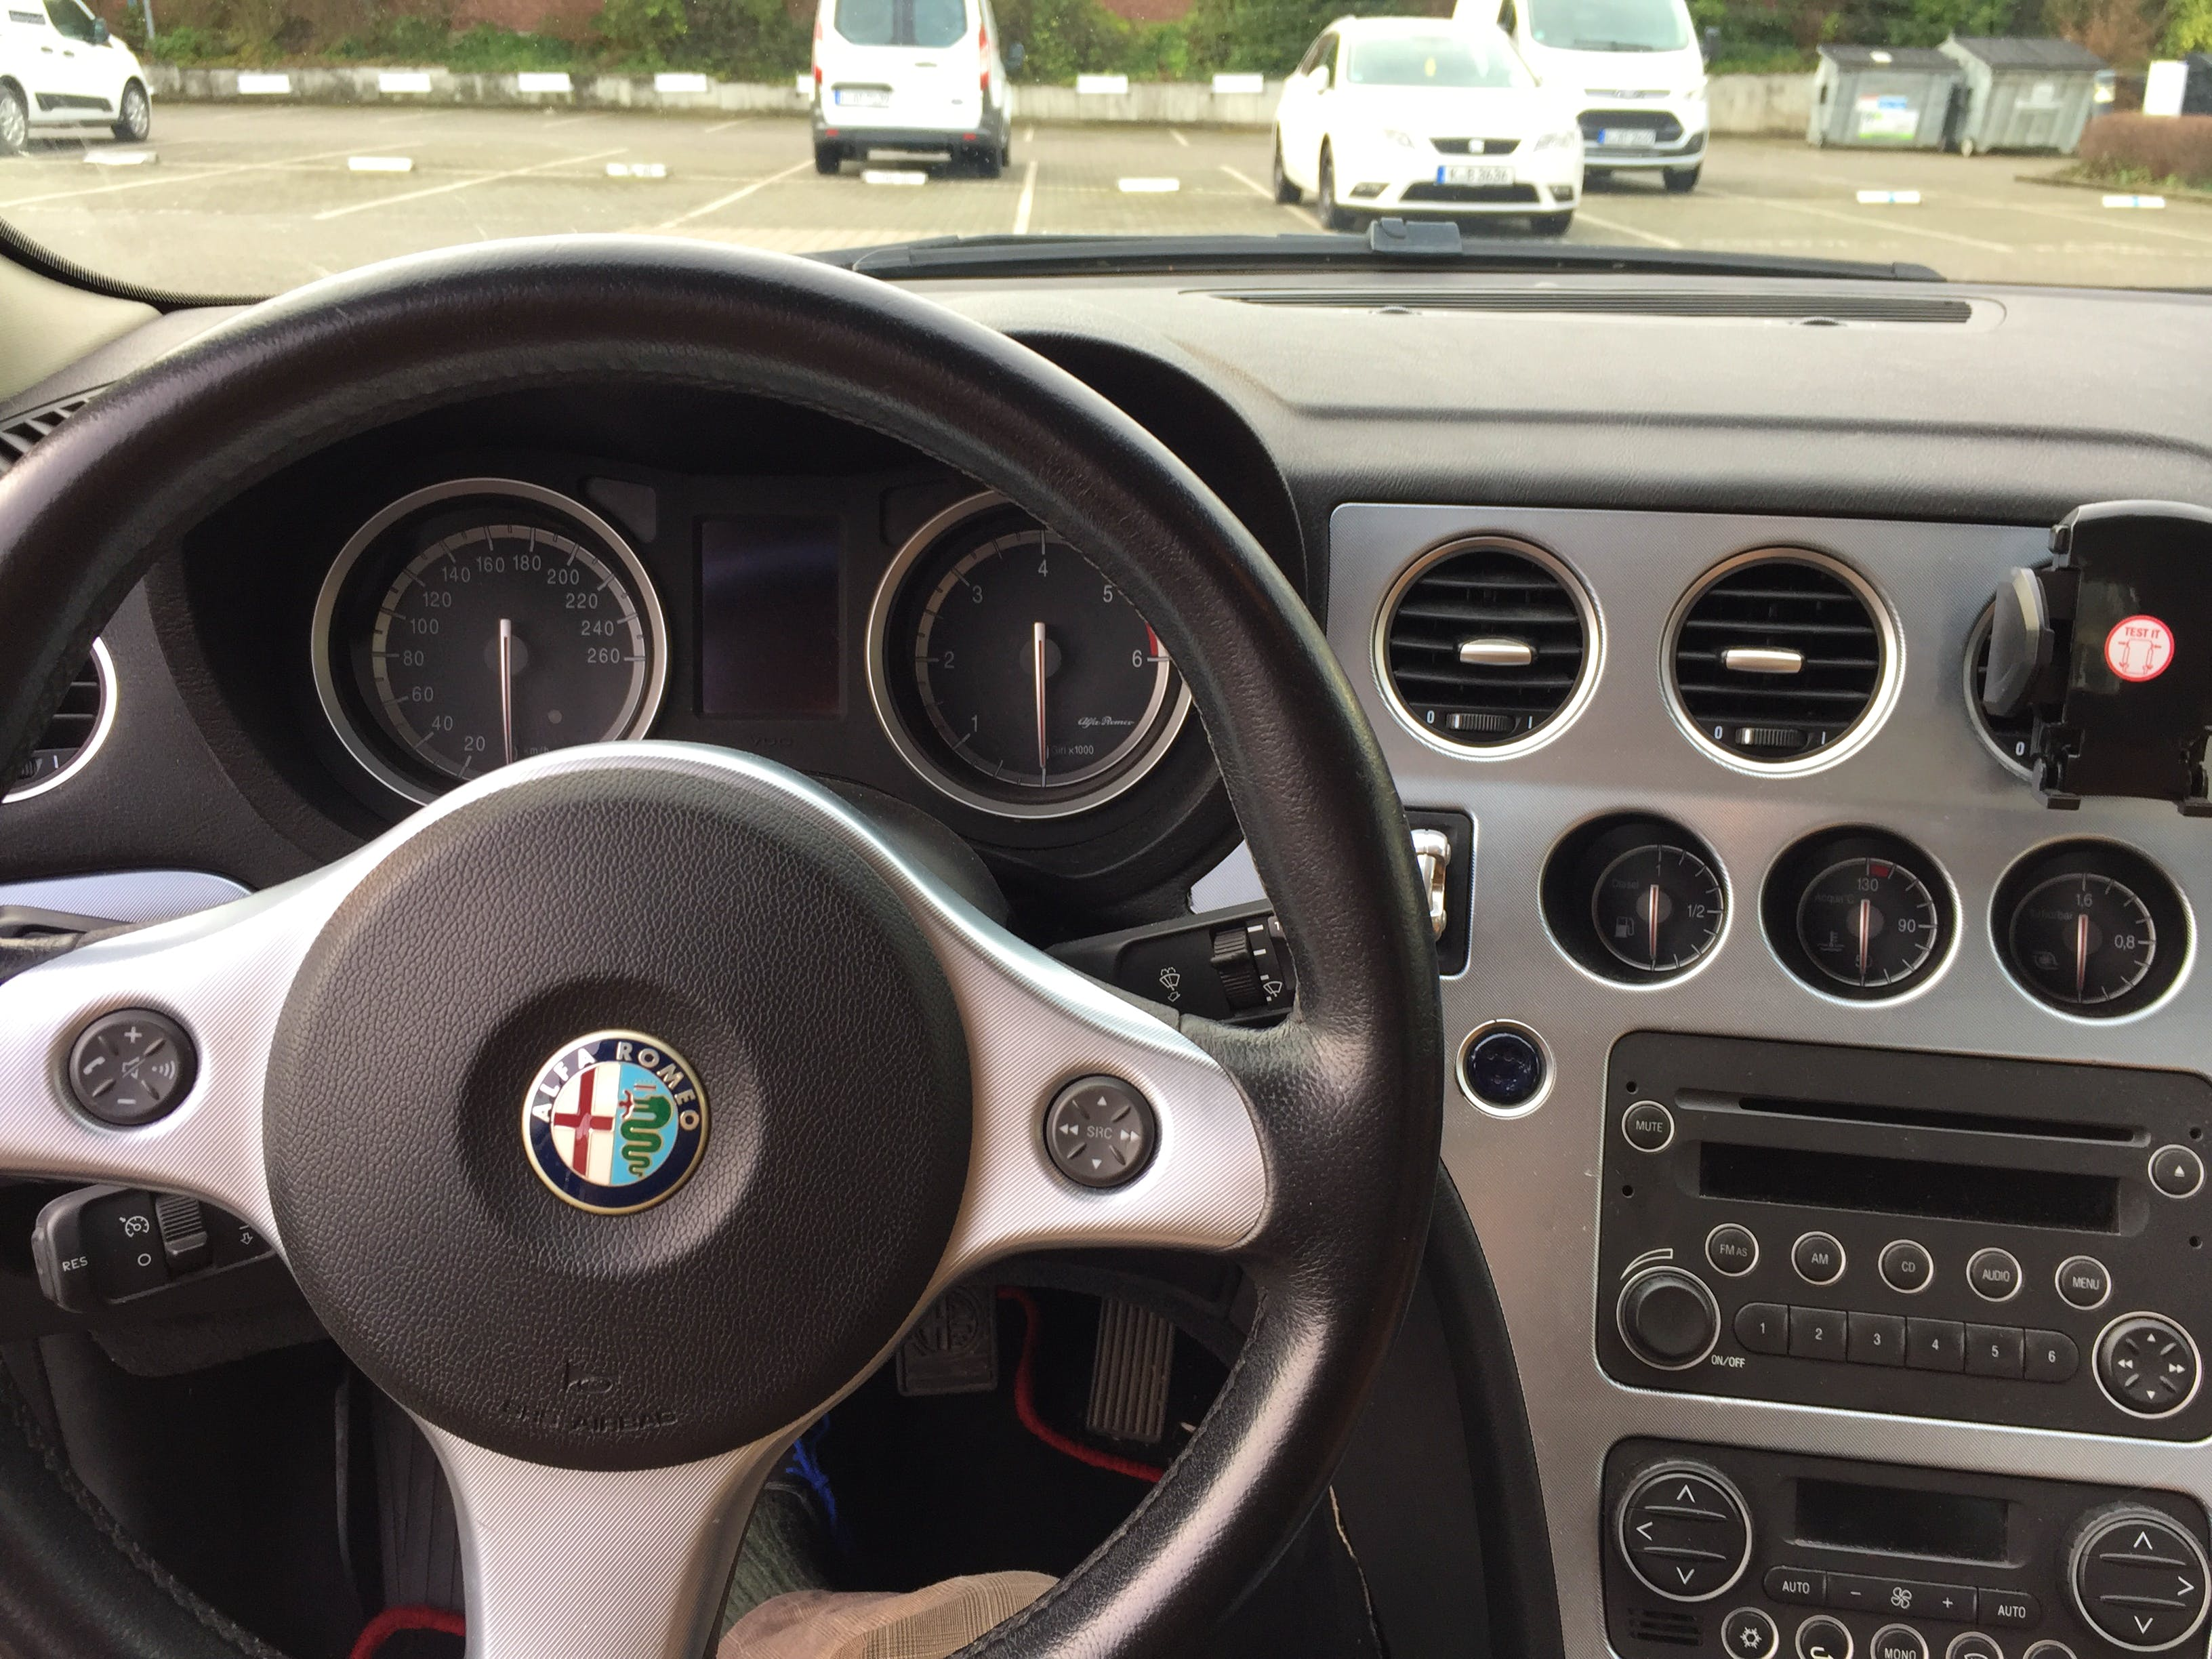 Alfa-Romeo 159 2.4 JTD mit CD-Player